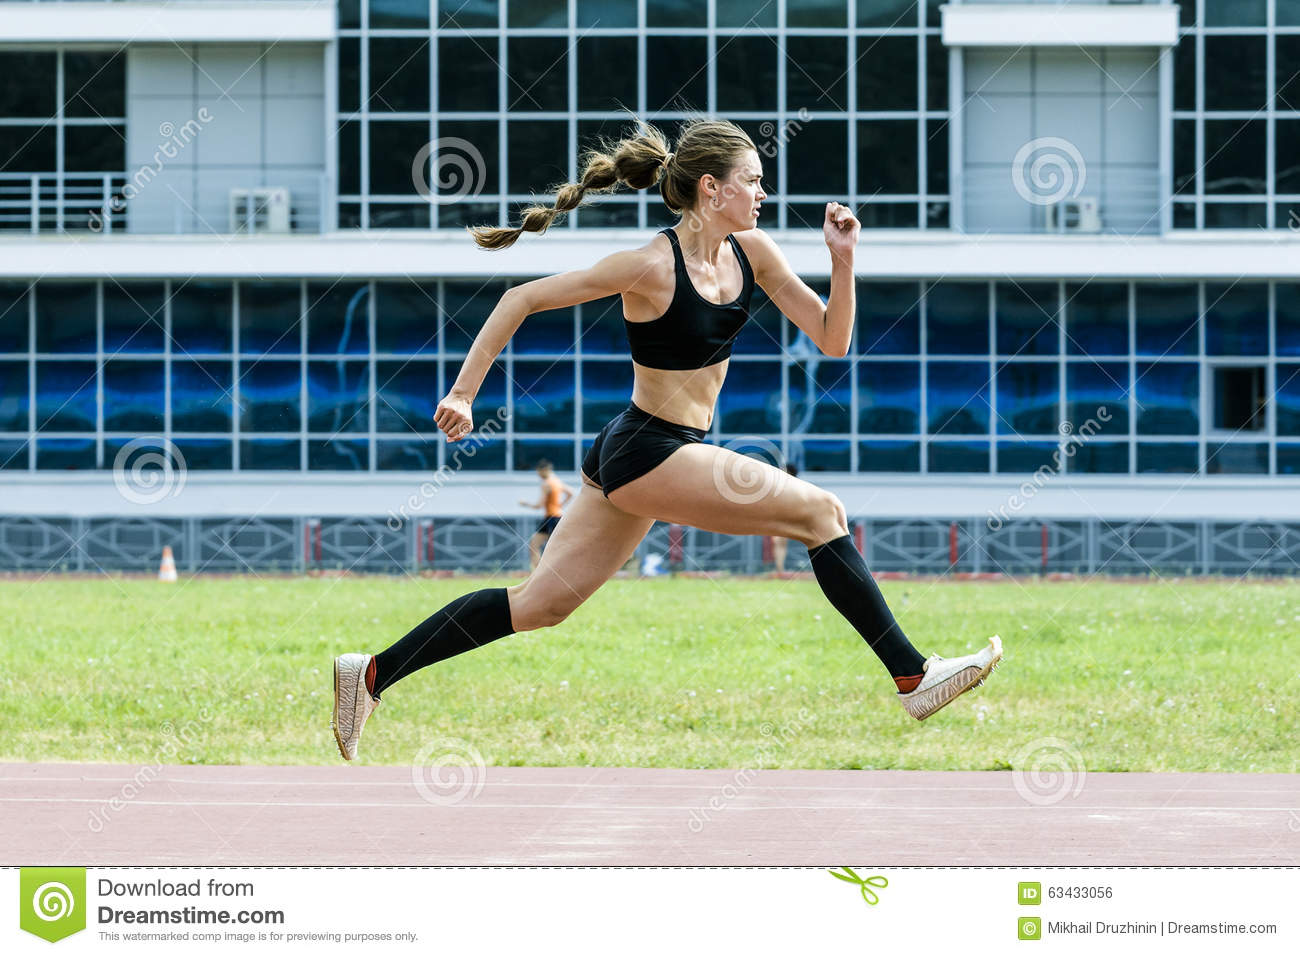 Girl athlete execution of triple jump